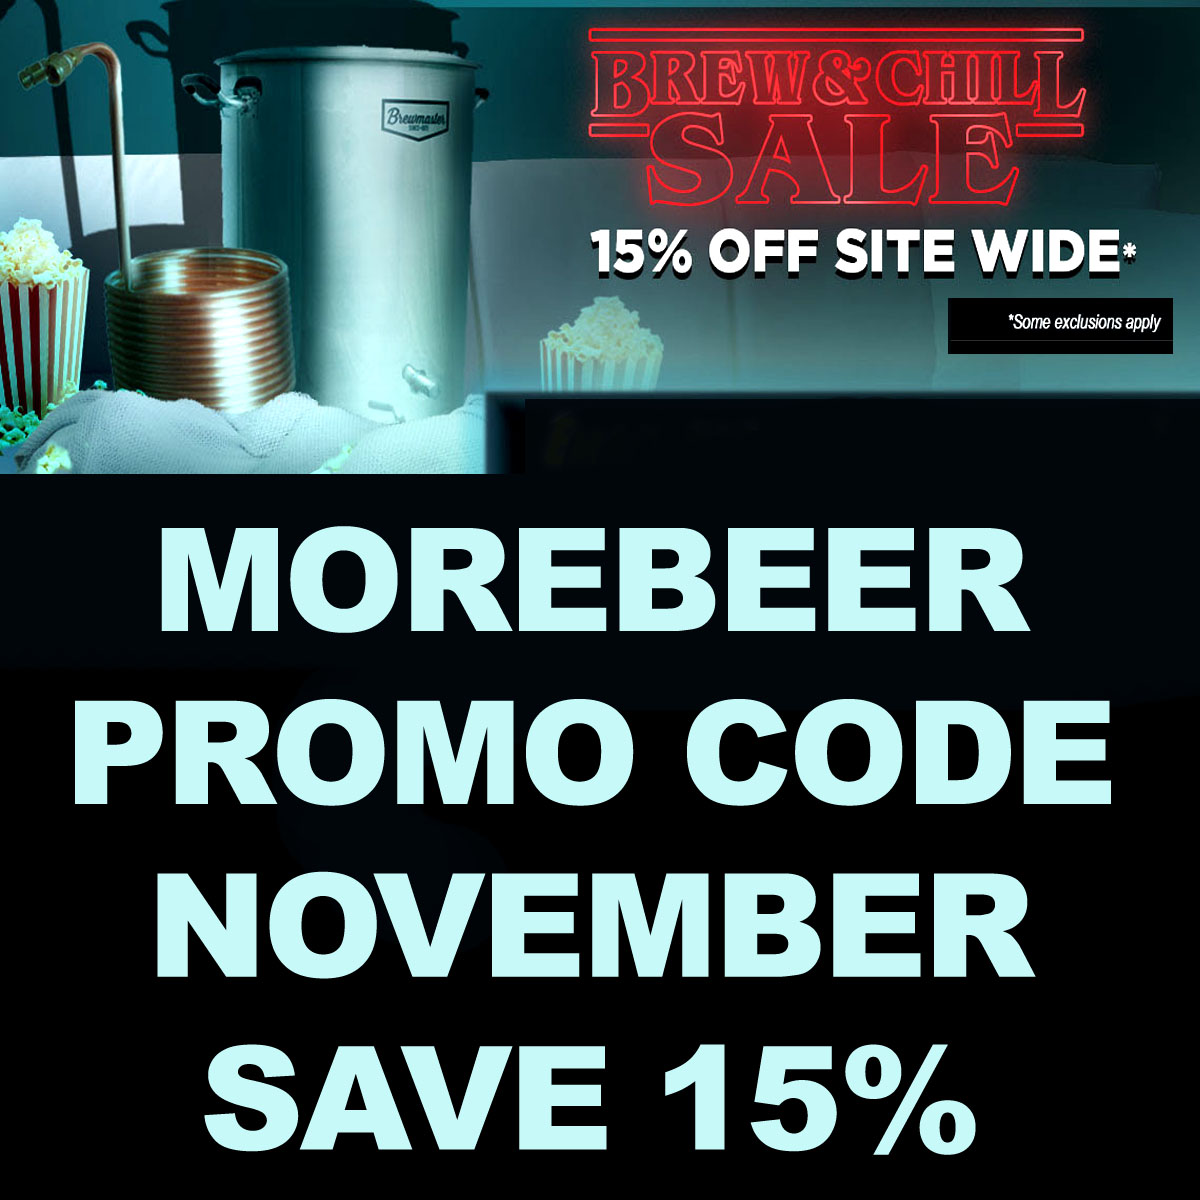 MoreBeer Save 15% Site Wide at MoreBeer.com with this More Beer Promo Code Coupon Code